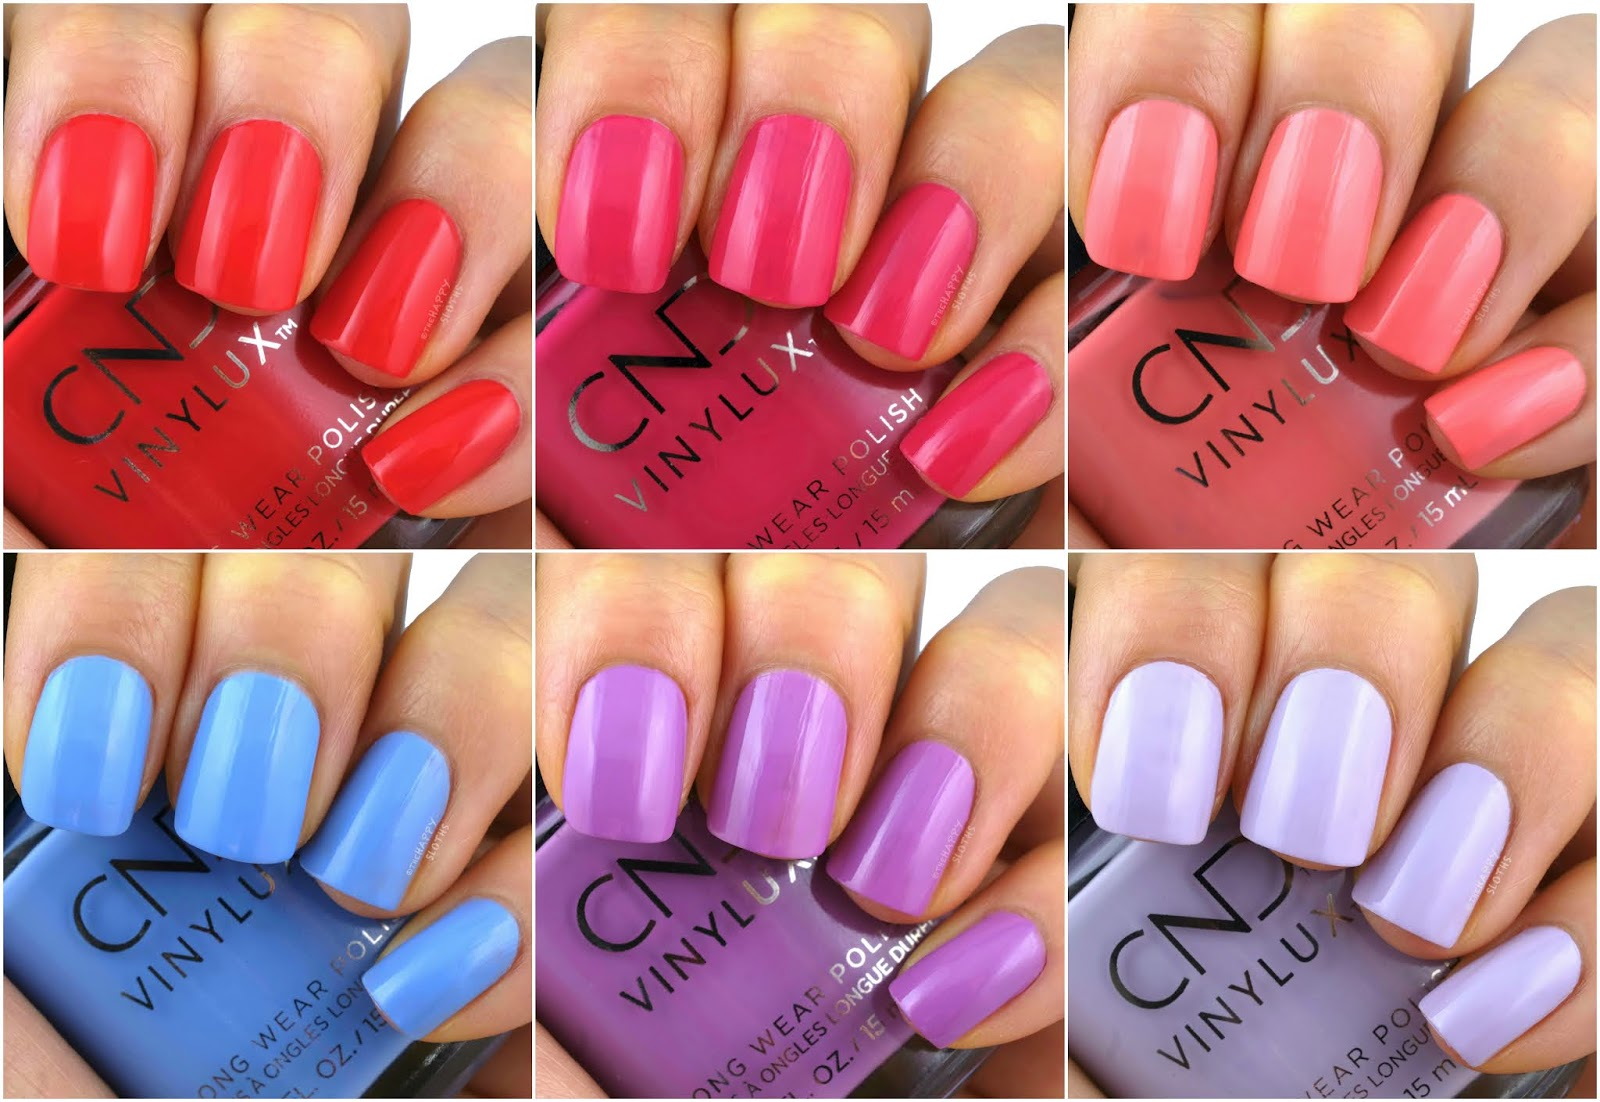 CND | Summer 2020 Nauti Nautical Collection: Review and Swatches